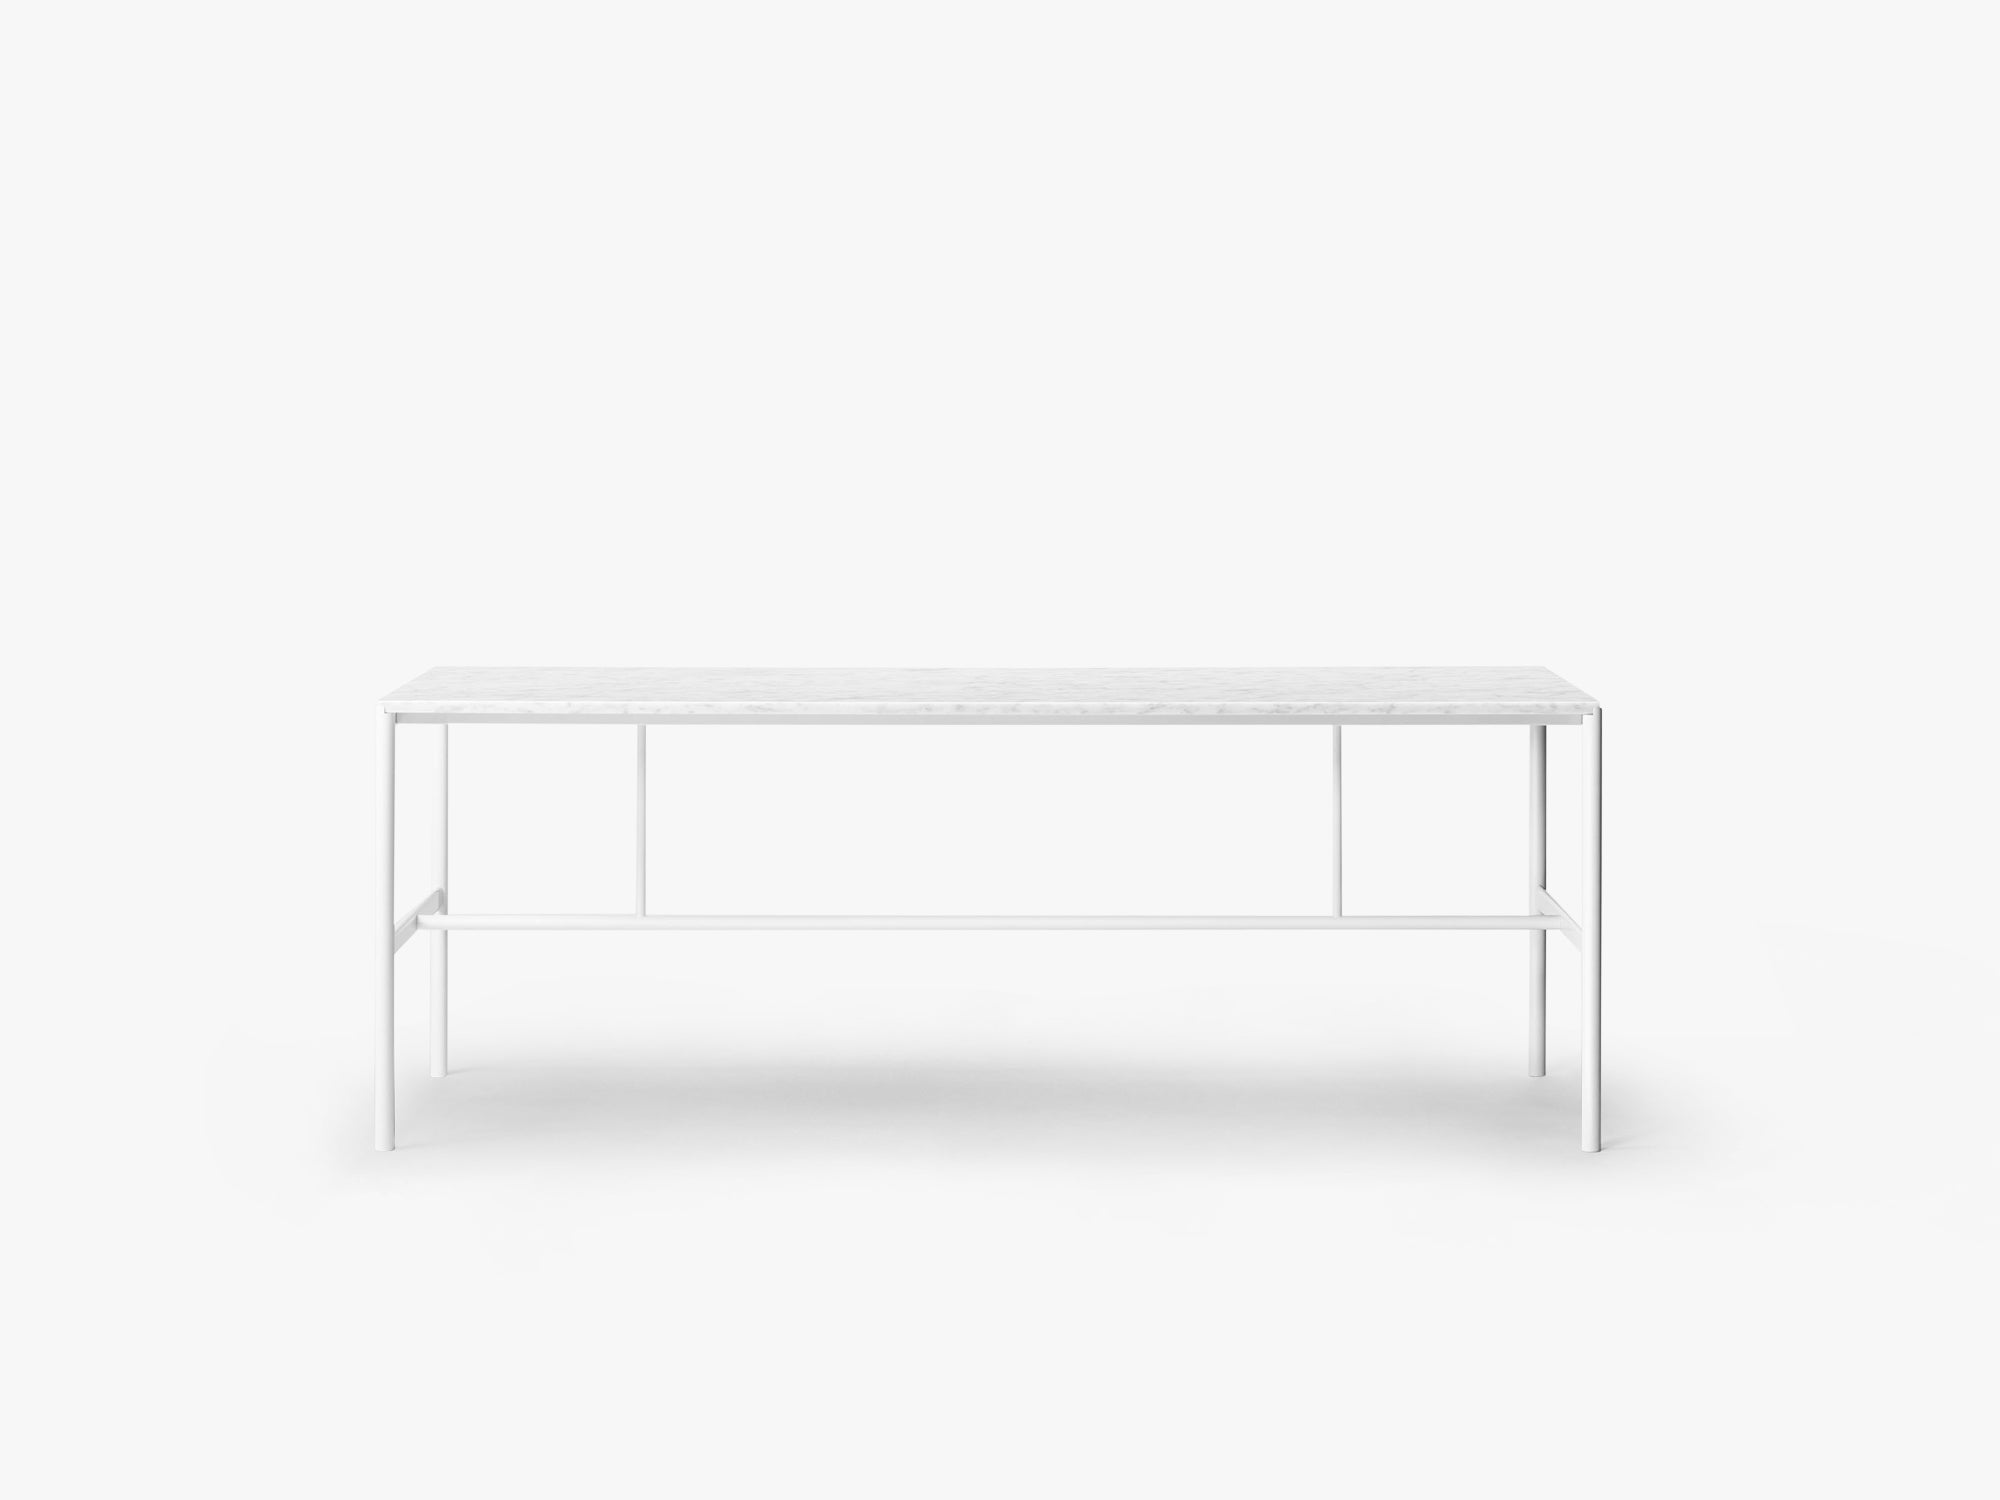 Mies Dining Table M1, White/Marble Bianca Carrera fra MILLION